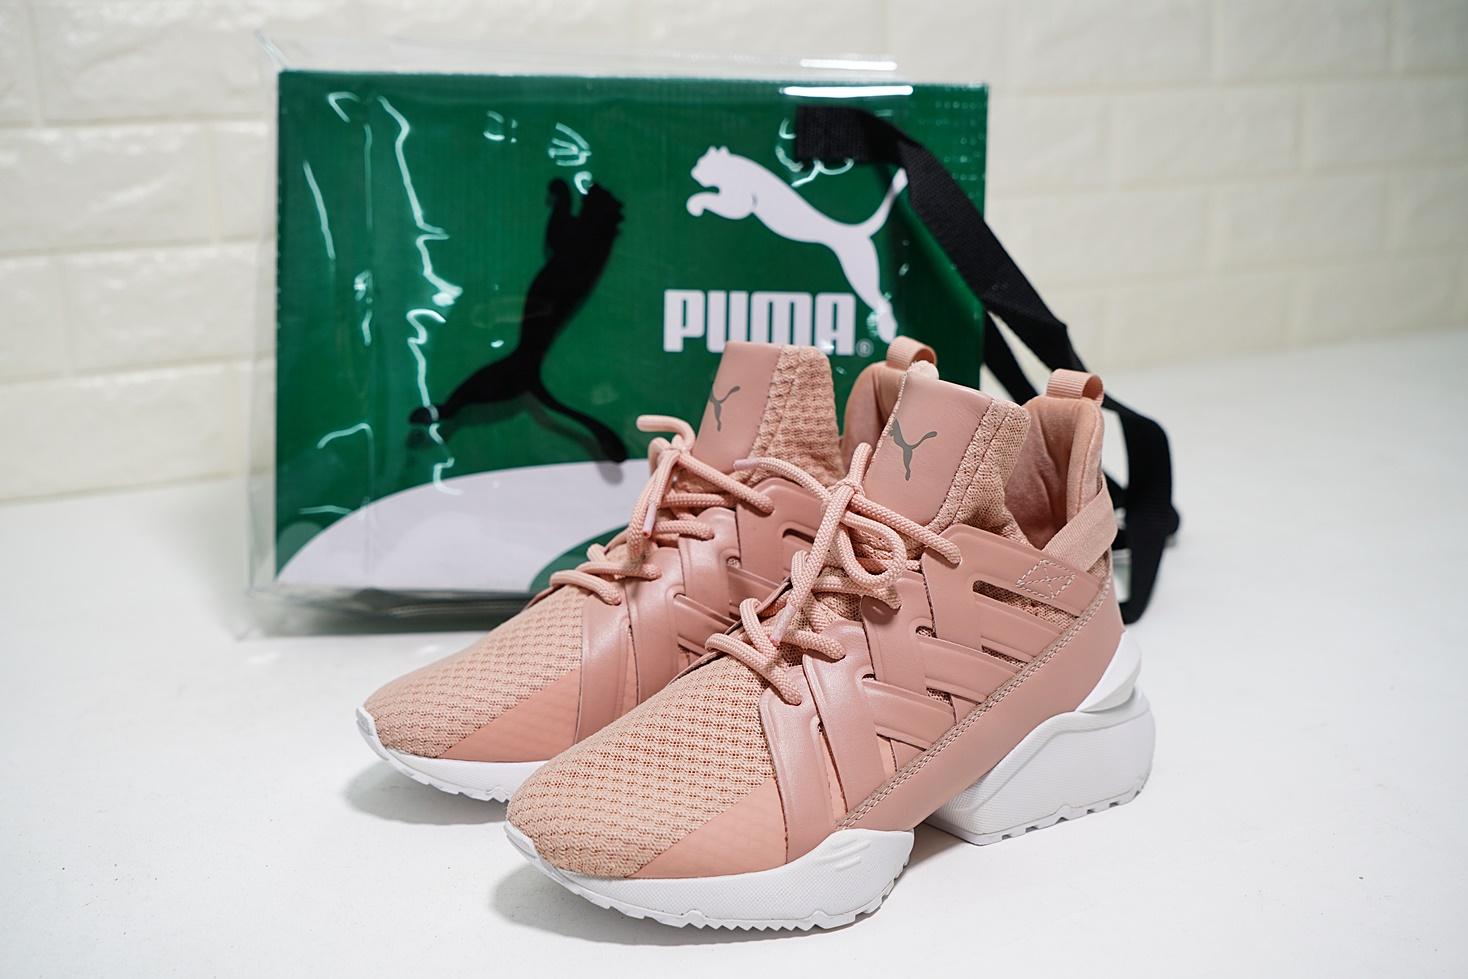 2018 Puma Pe Baskets Femme Chaussures De Badminton Satin Muse Echo Y6g7ybf